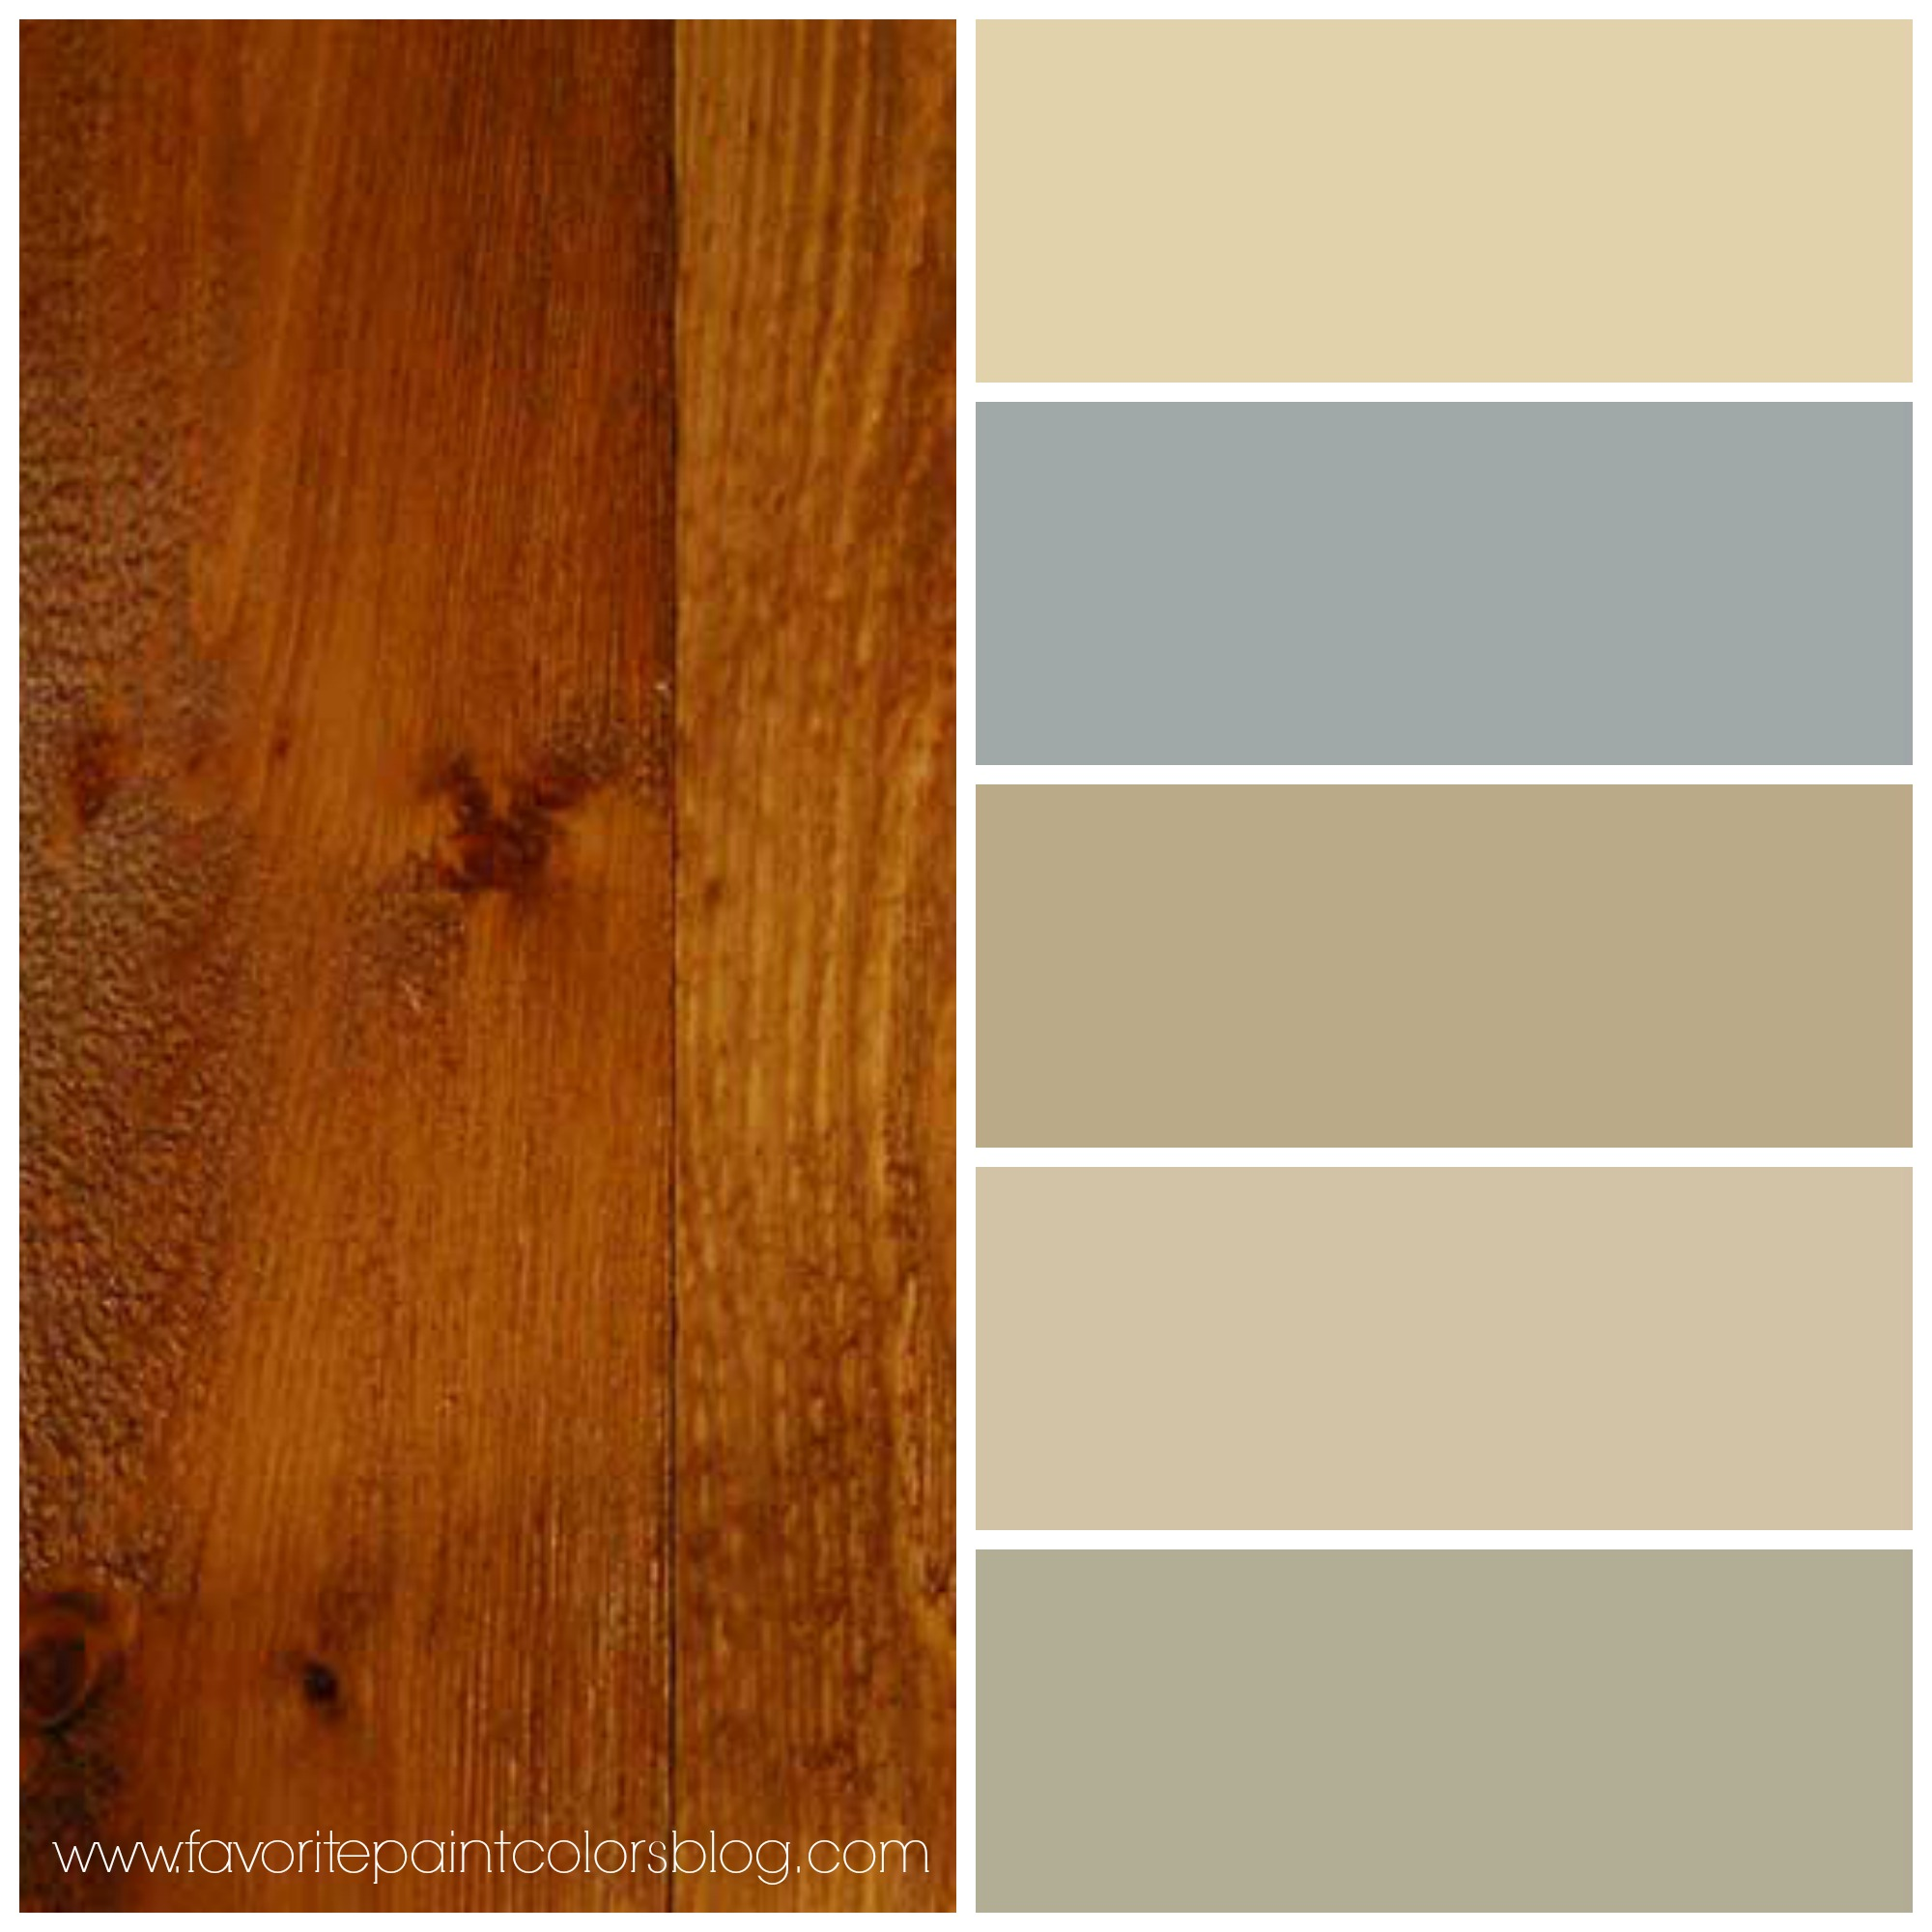 Wood trim favorite paint colors blog Wood colour paint